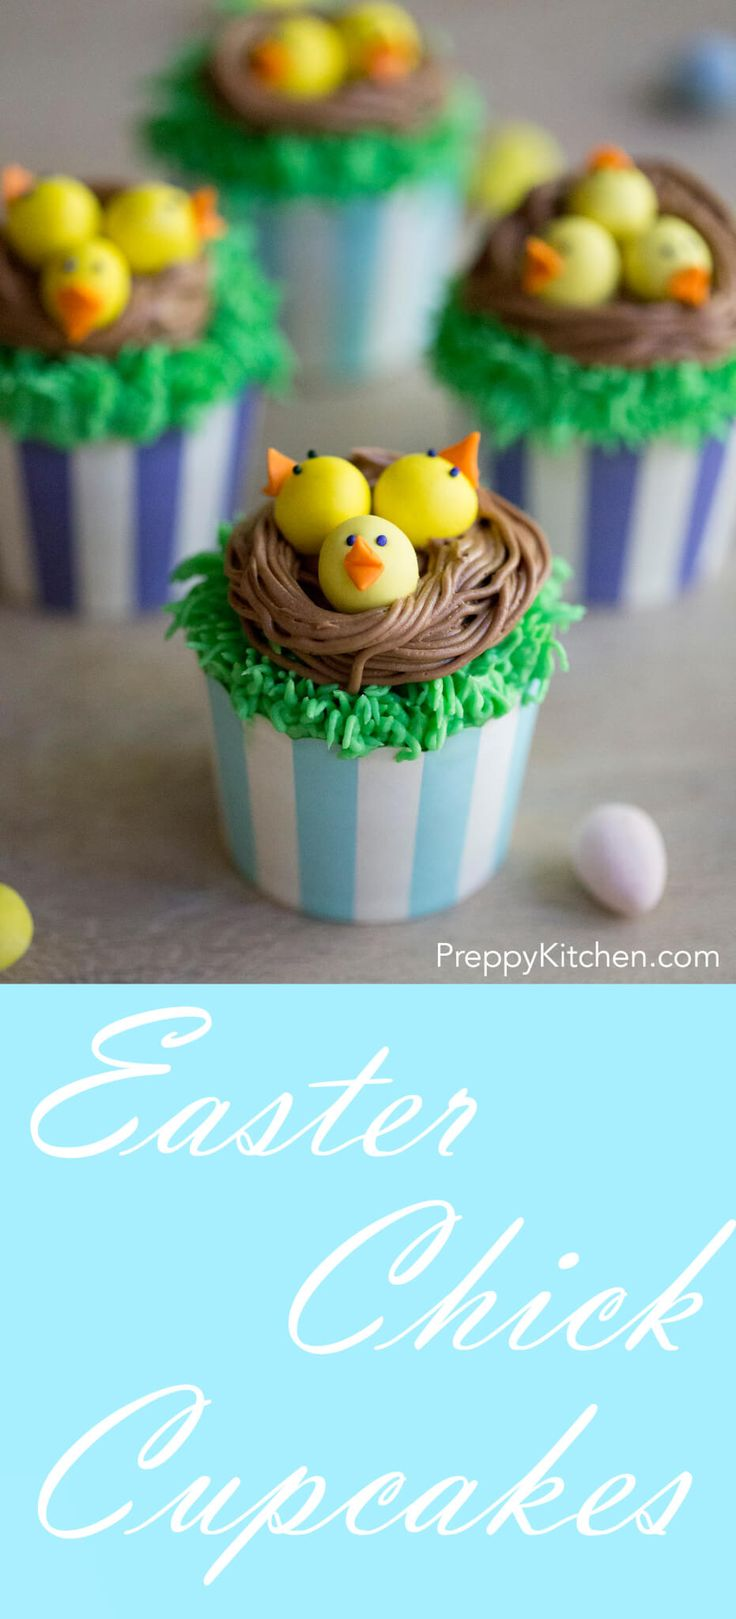 Easter Chick Cupcakes via @preppykitchen